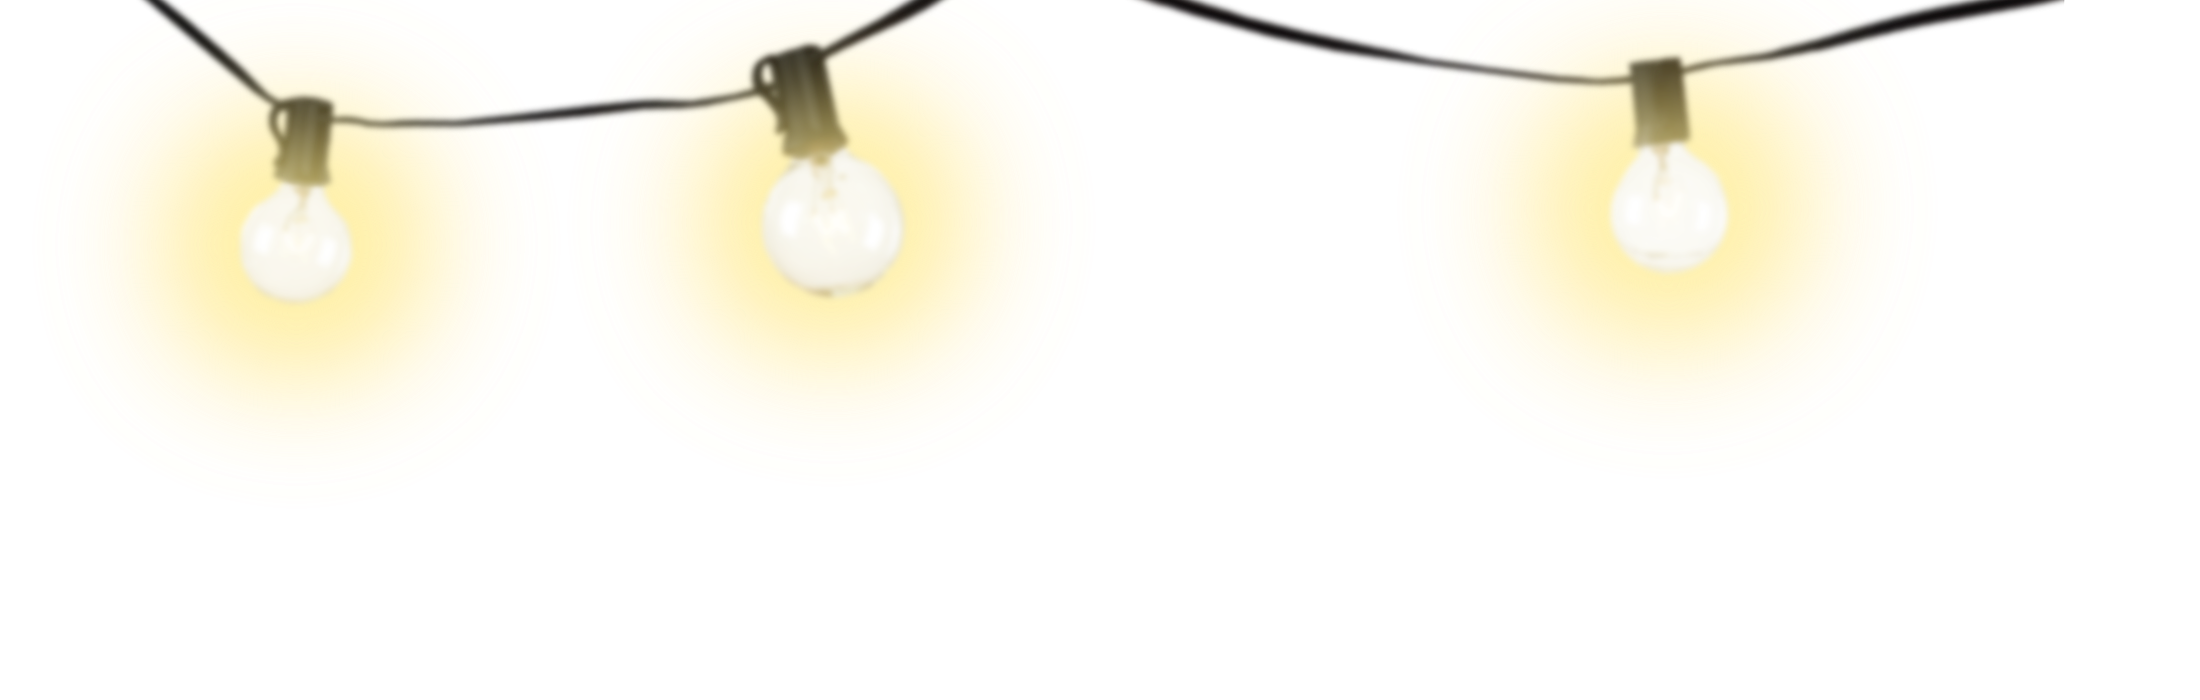 String lights png transparent. Collection of clipart